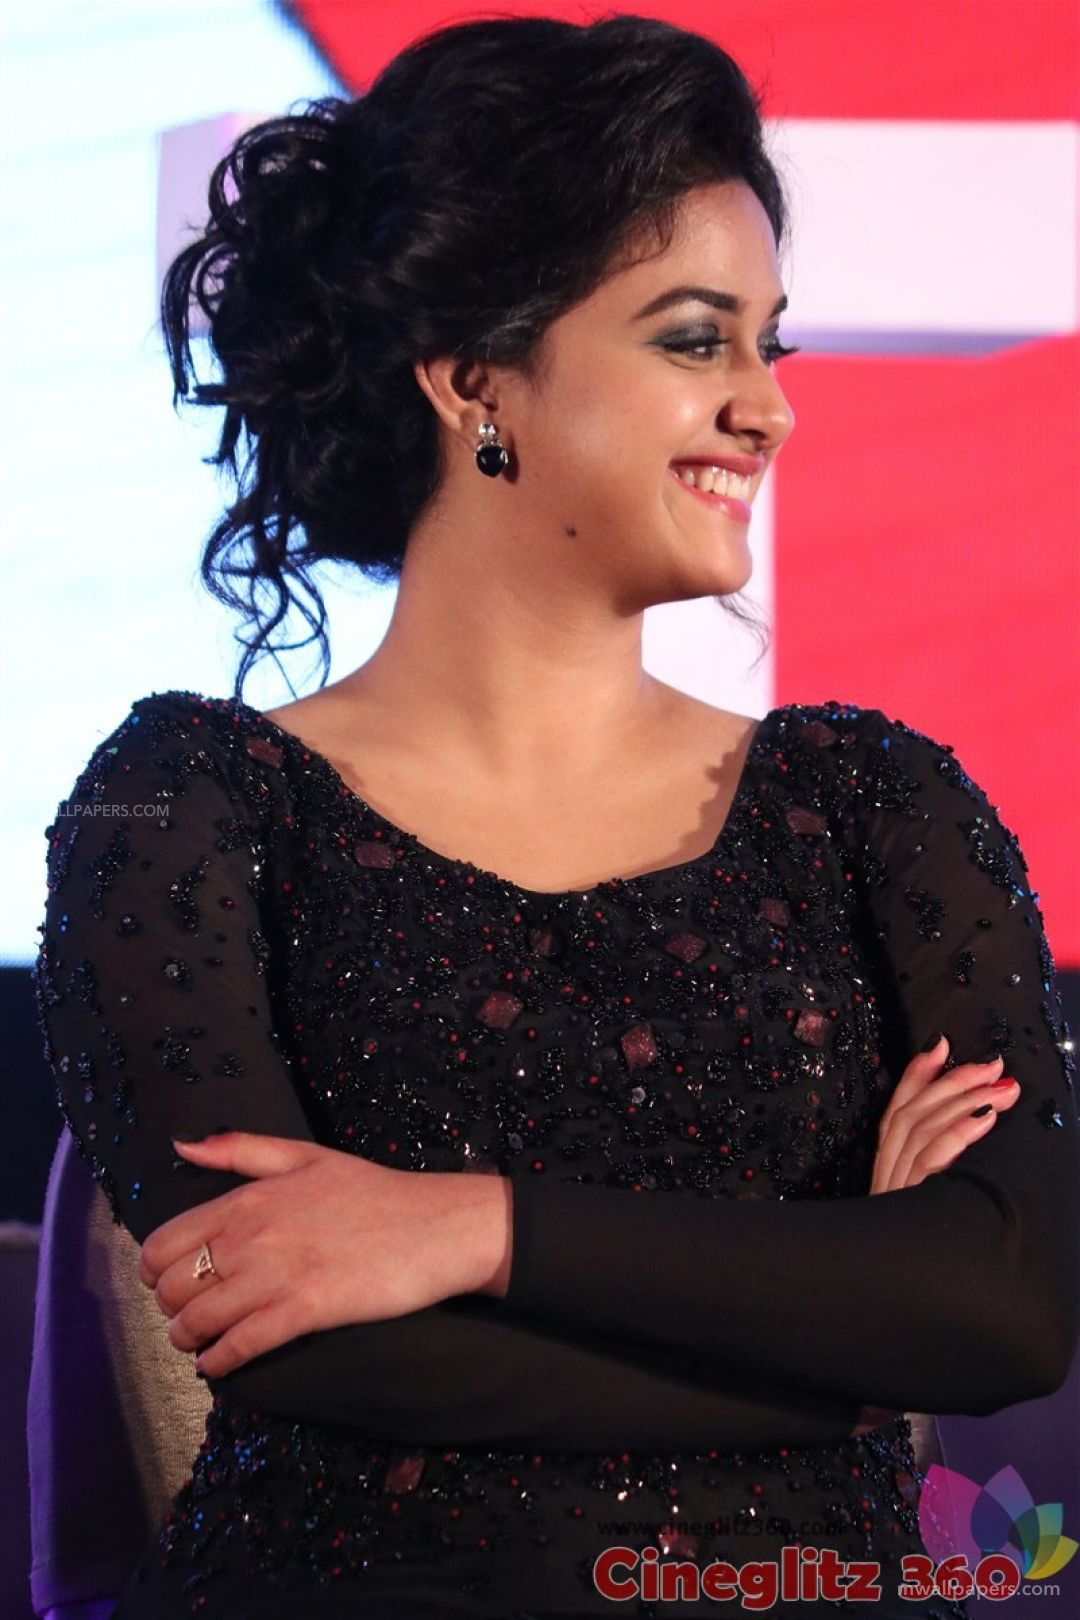 Keerthy Suresh HD Wallpapers (Desktop Background / Android / iPhone) (1080p, 4k) (57985) - Keerthy Suresh